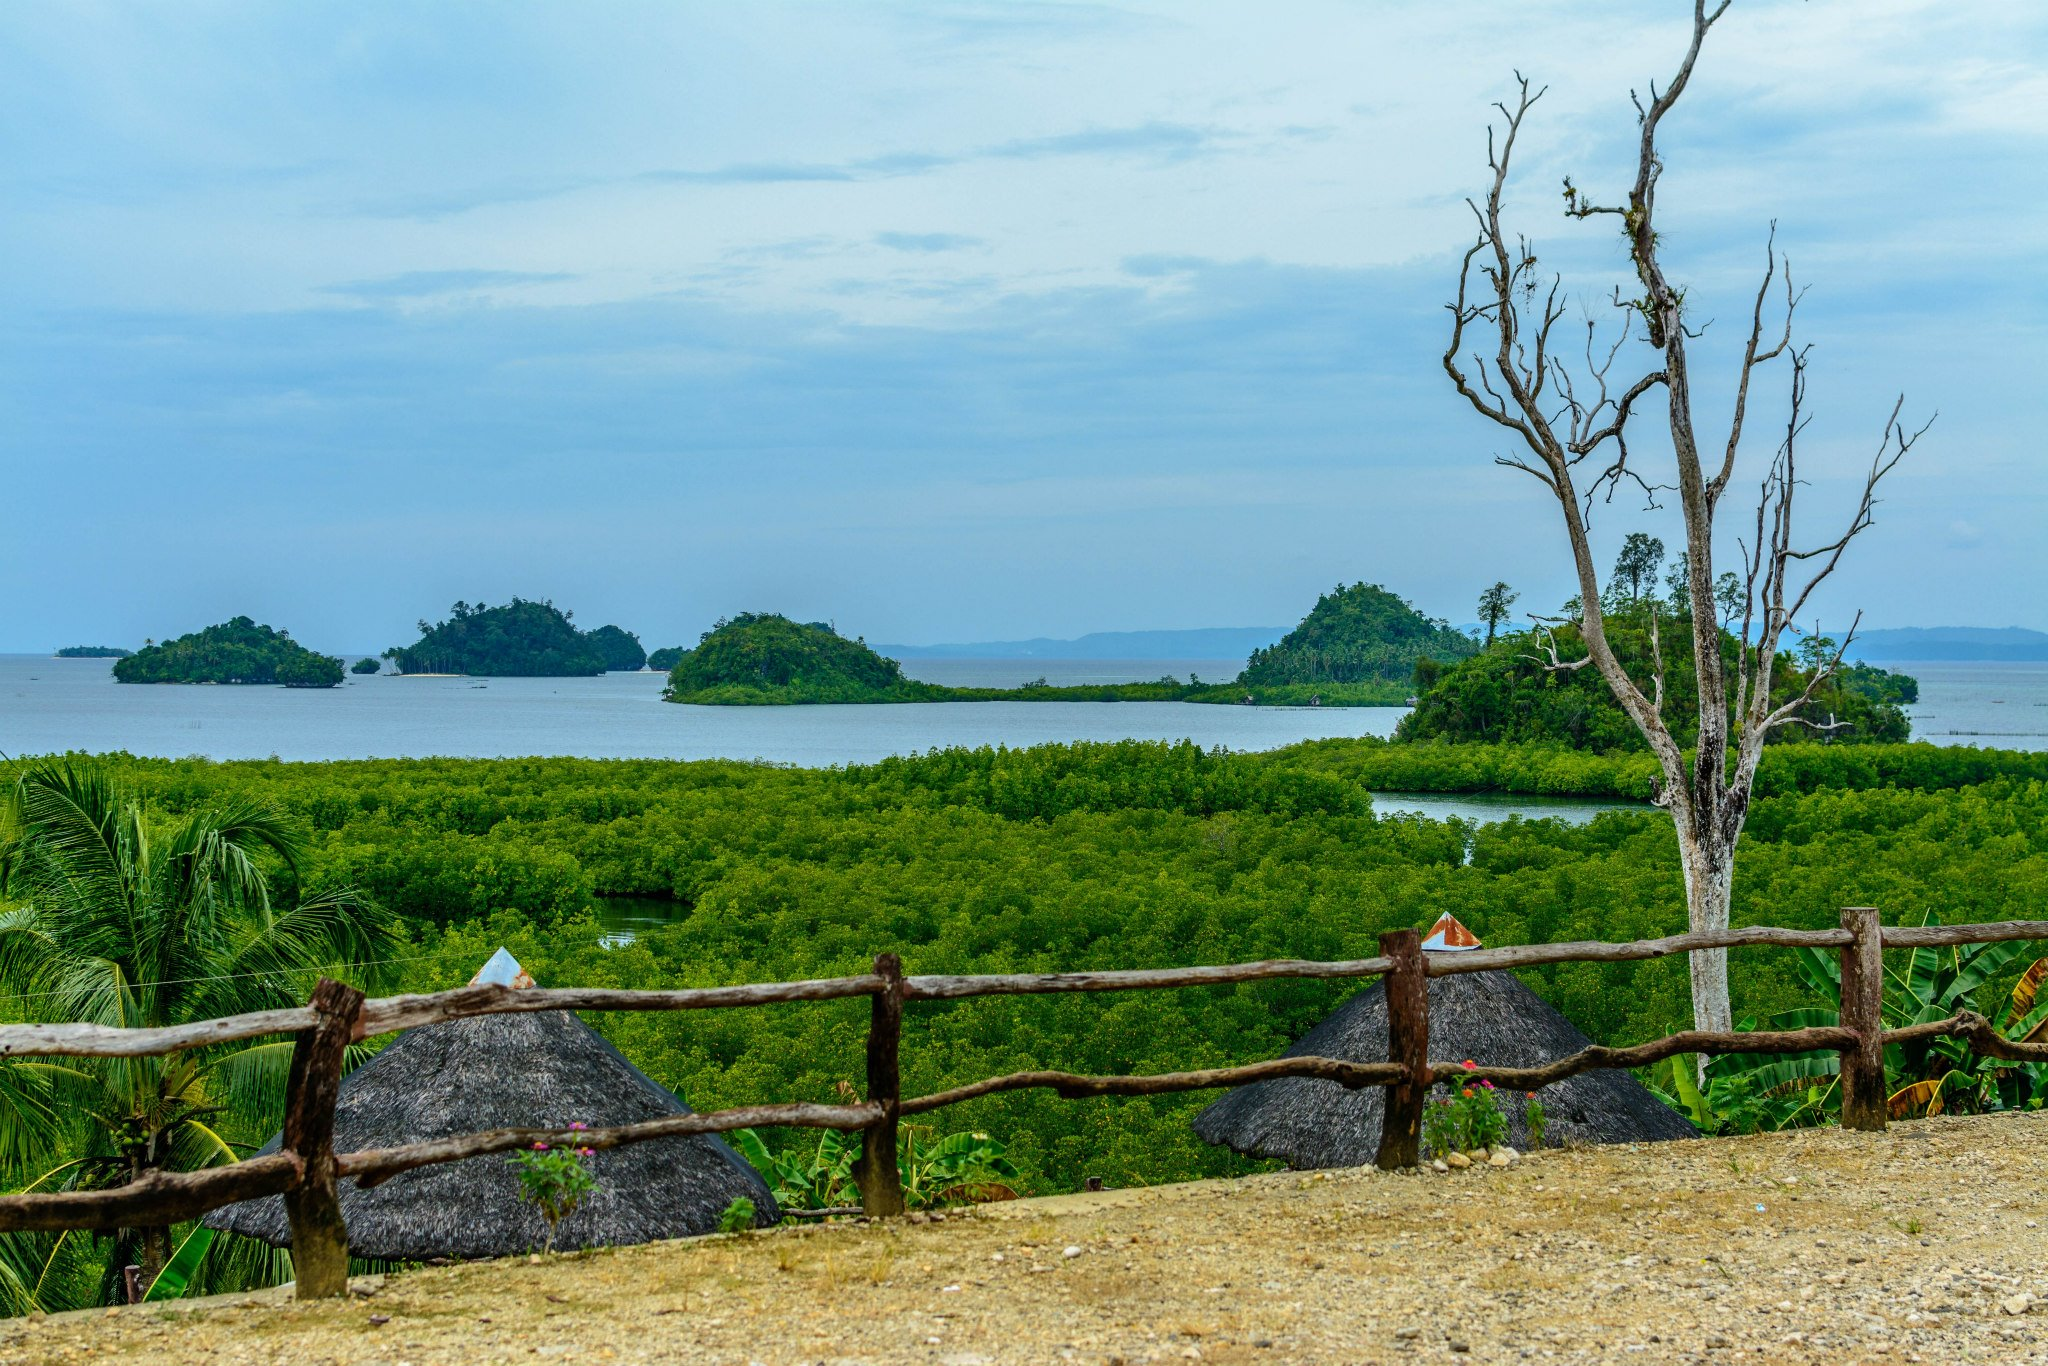 View of the islets taken from the Rest Area at Davisol.